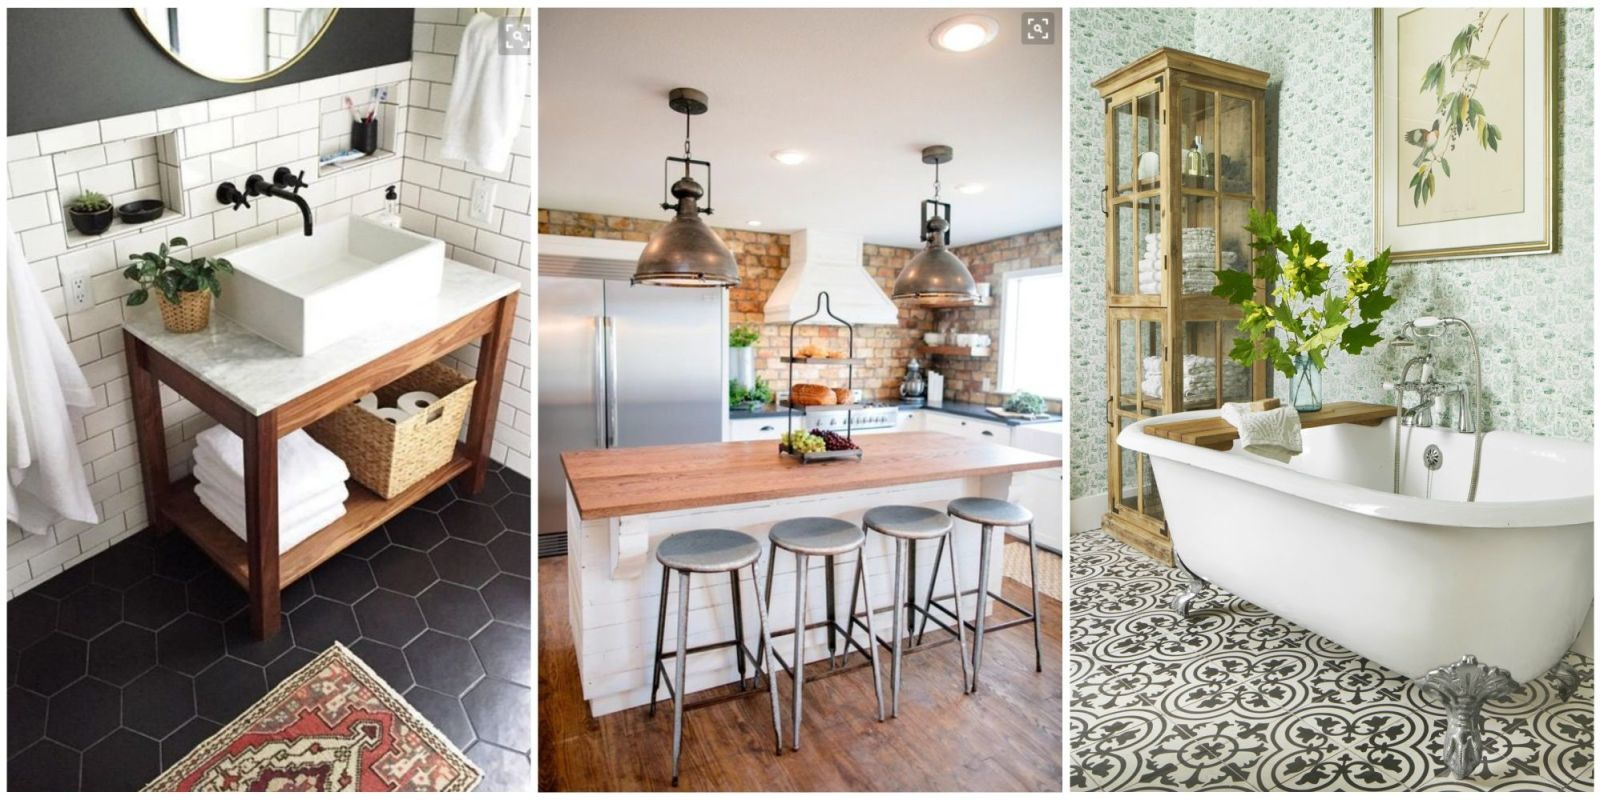 7 interior design trends that will help your home sell - How to take interior photos for real estate ...